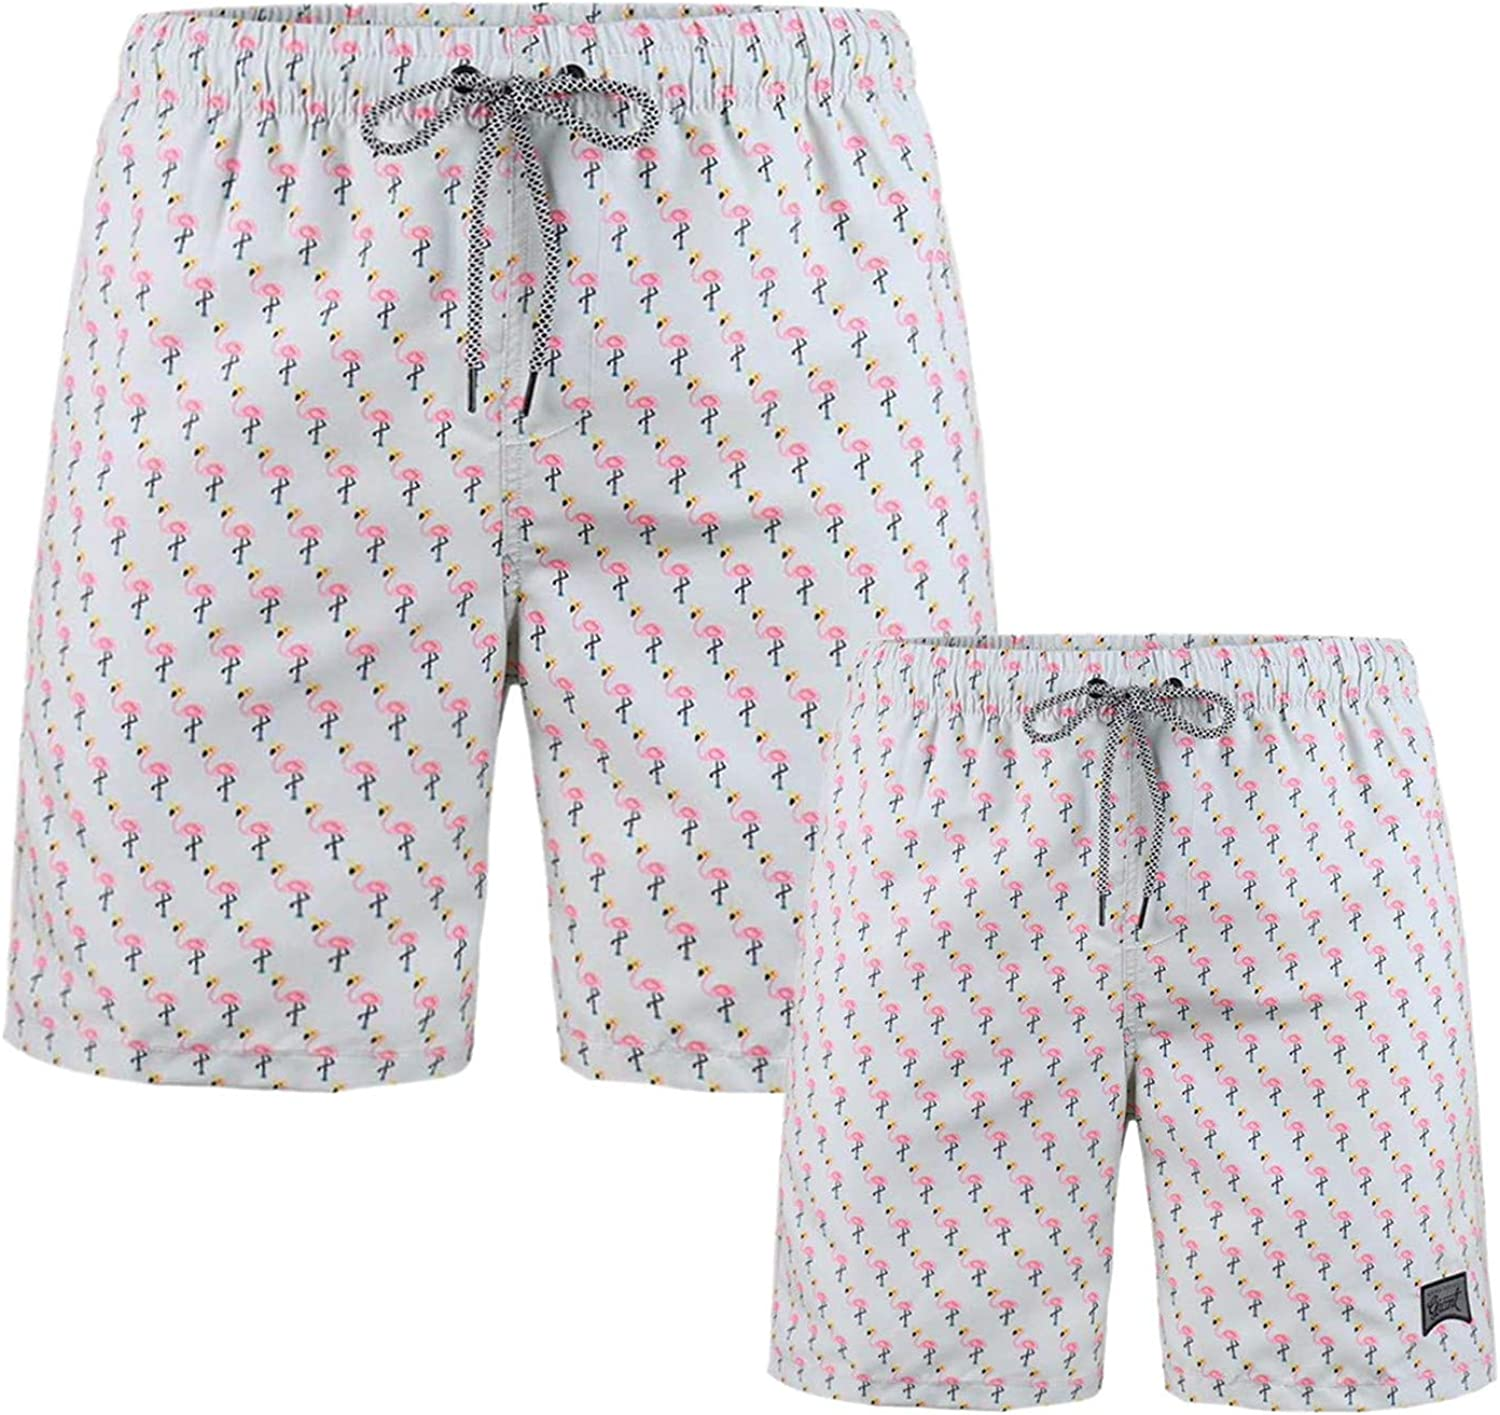 Father and BoysSwim Trunk Mesh Lined Summer Smooth Vacation Board Shorts